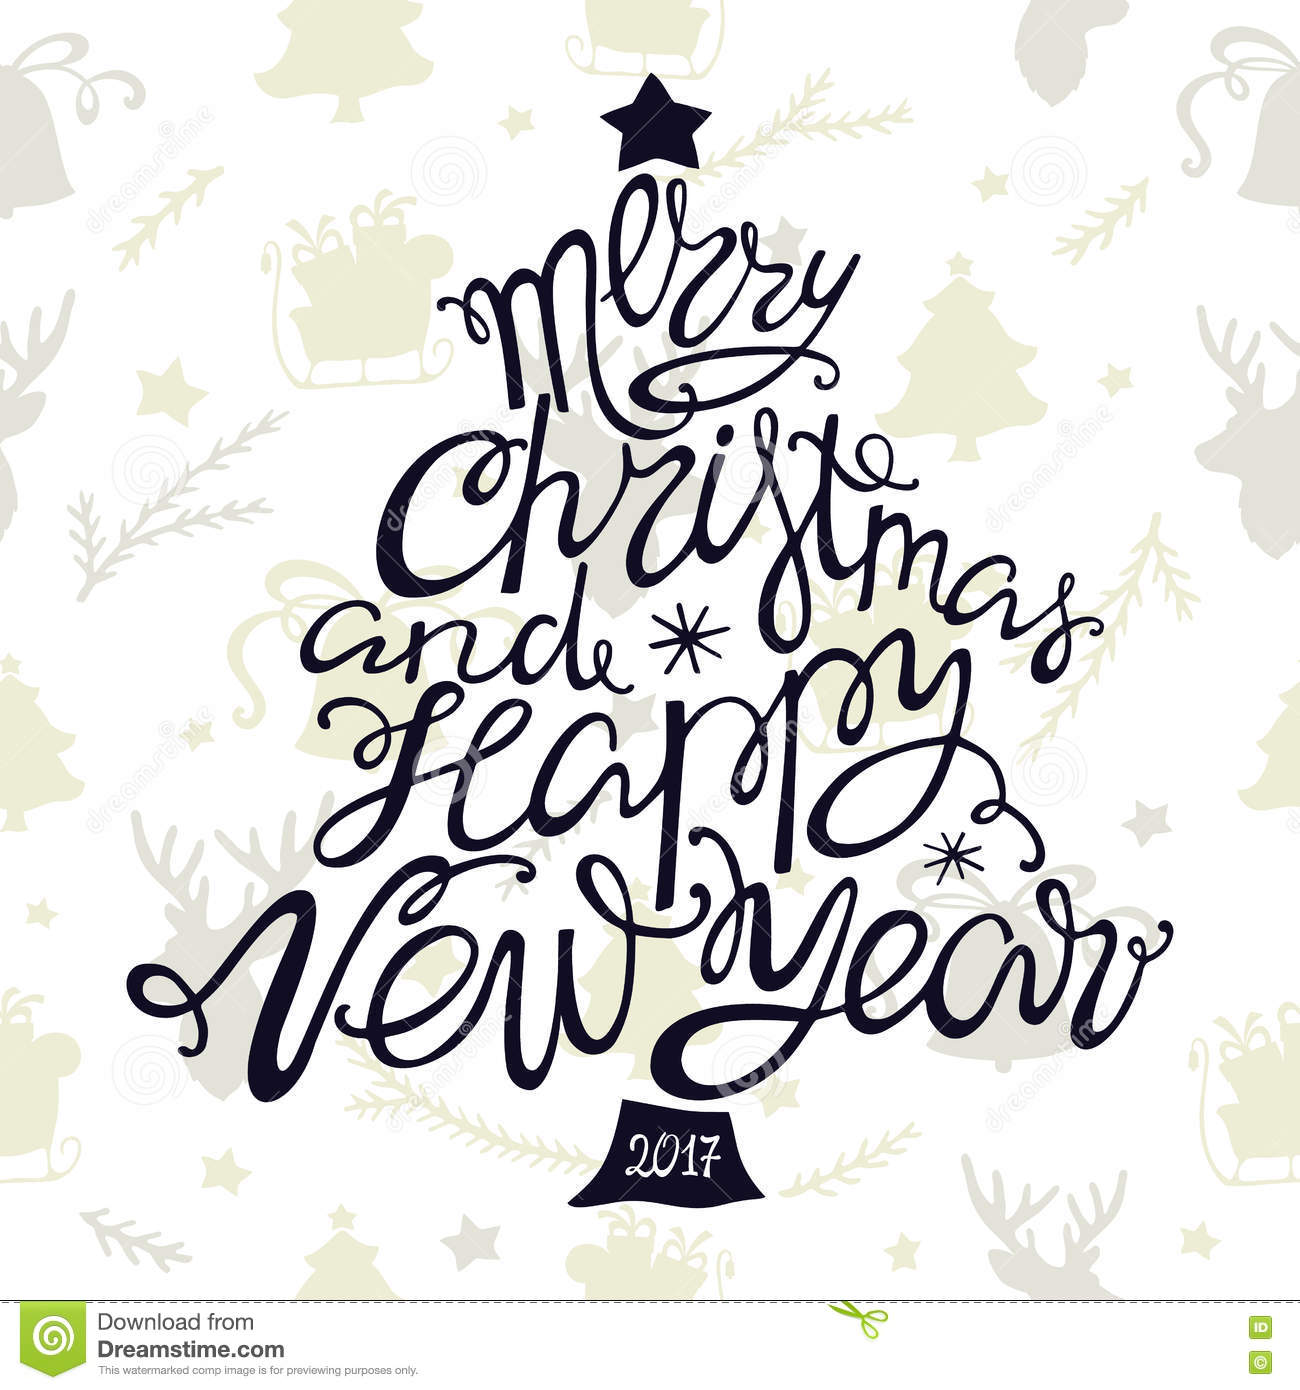 Merry Christmas And Happy New Year Handdrawn Lettering In The Shape